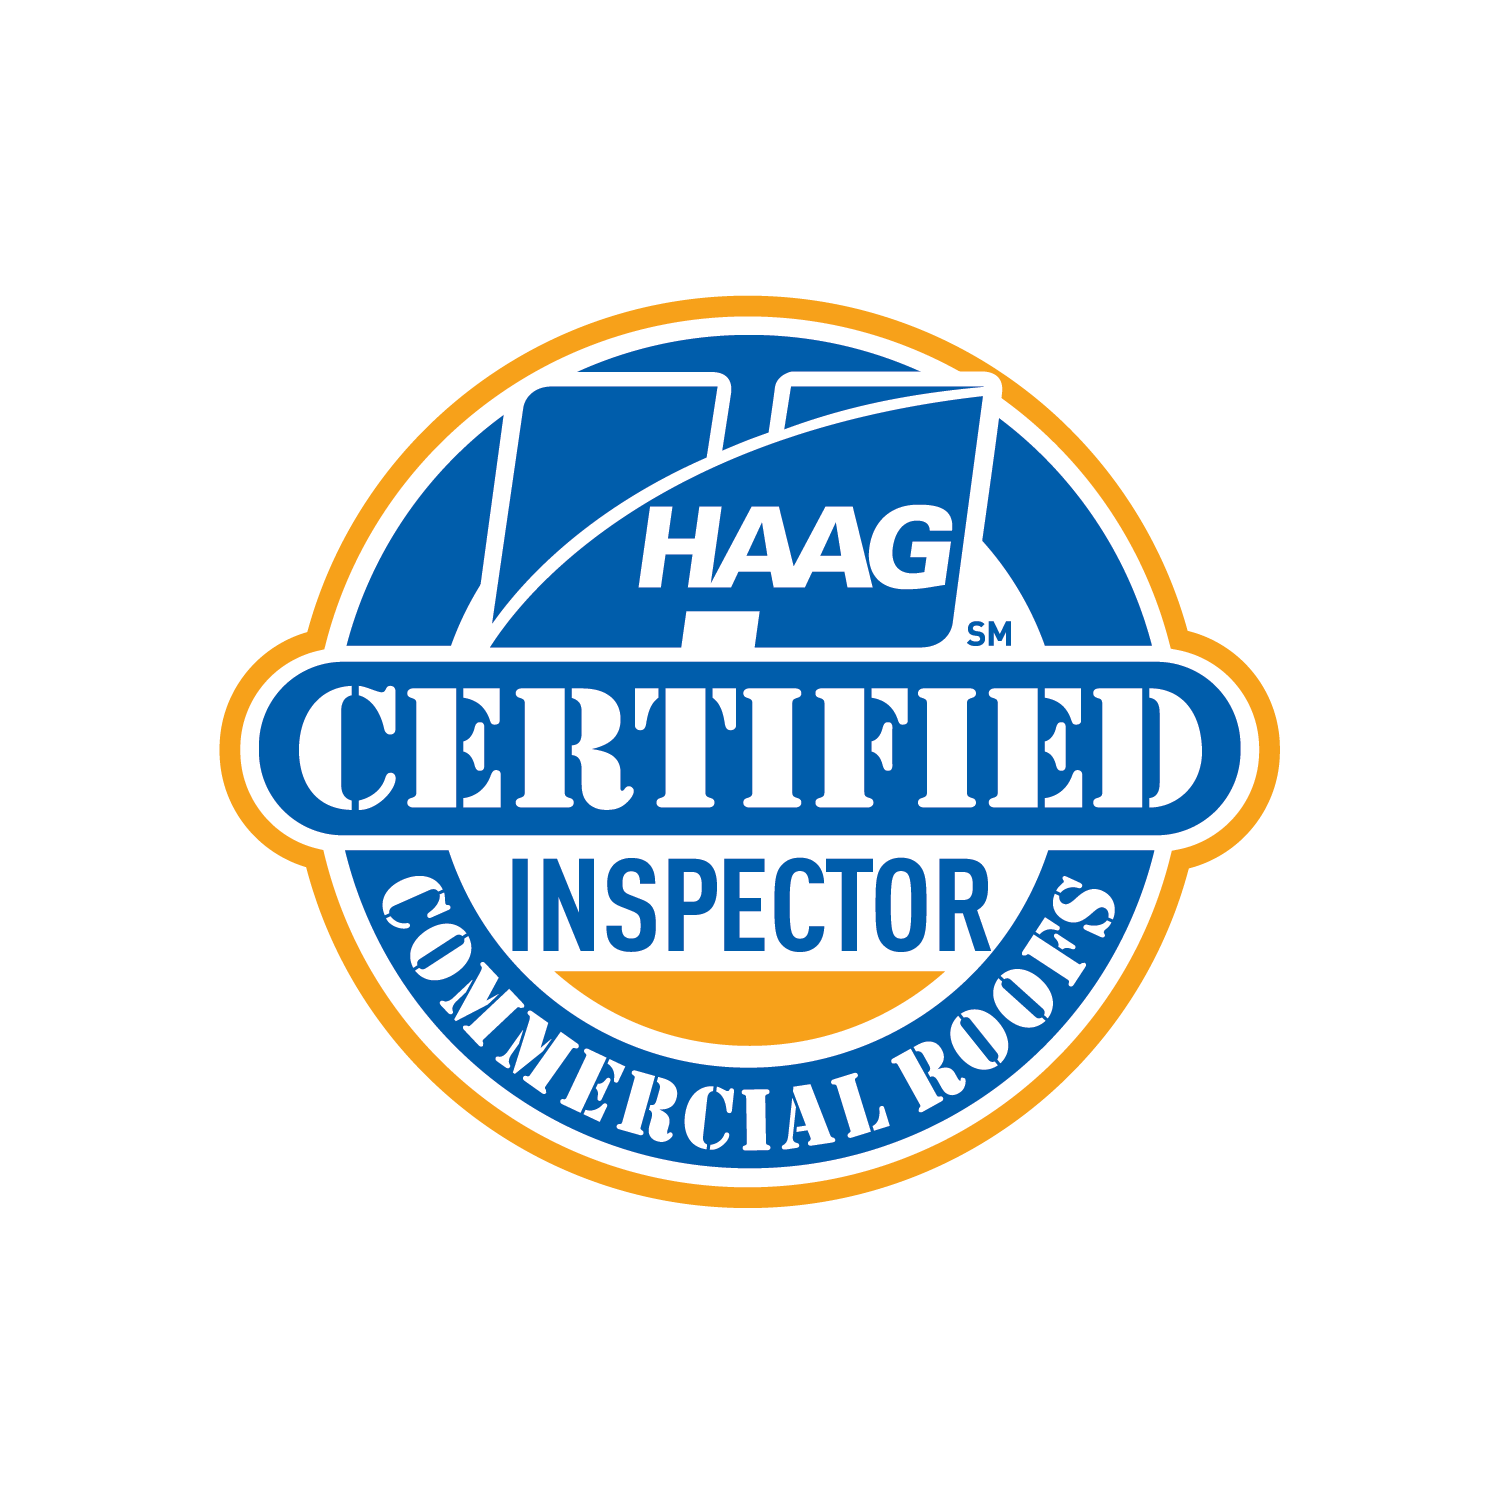 Haag Certified Inspector Programs Are Our S Premier Prehensive Training  These Intensive 3 Day Certification Bine